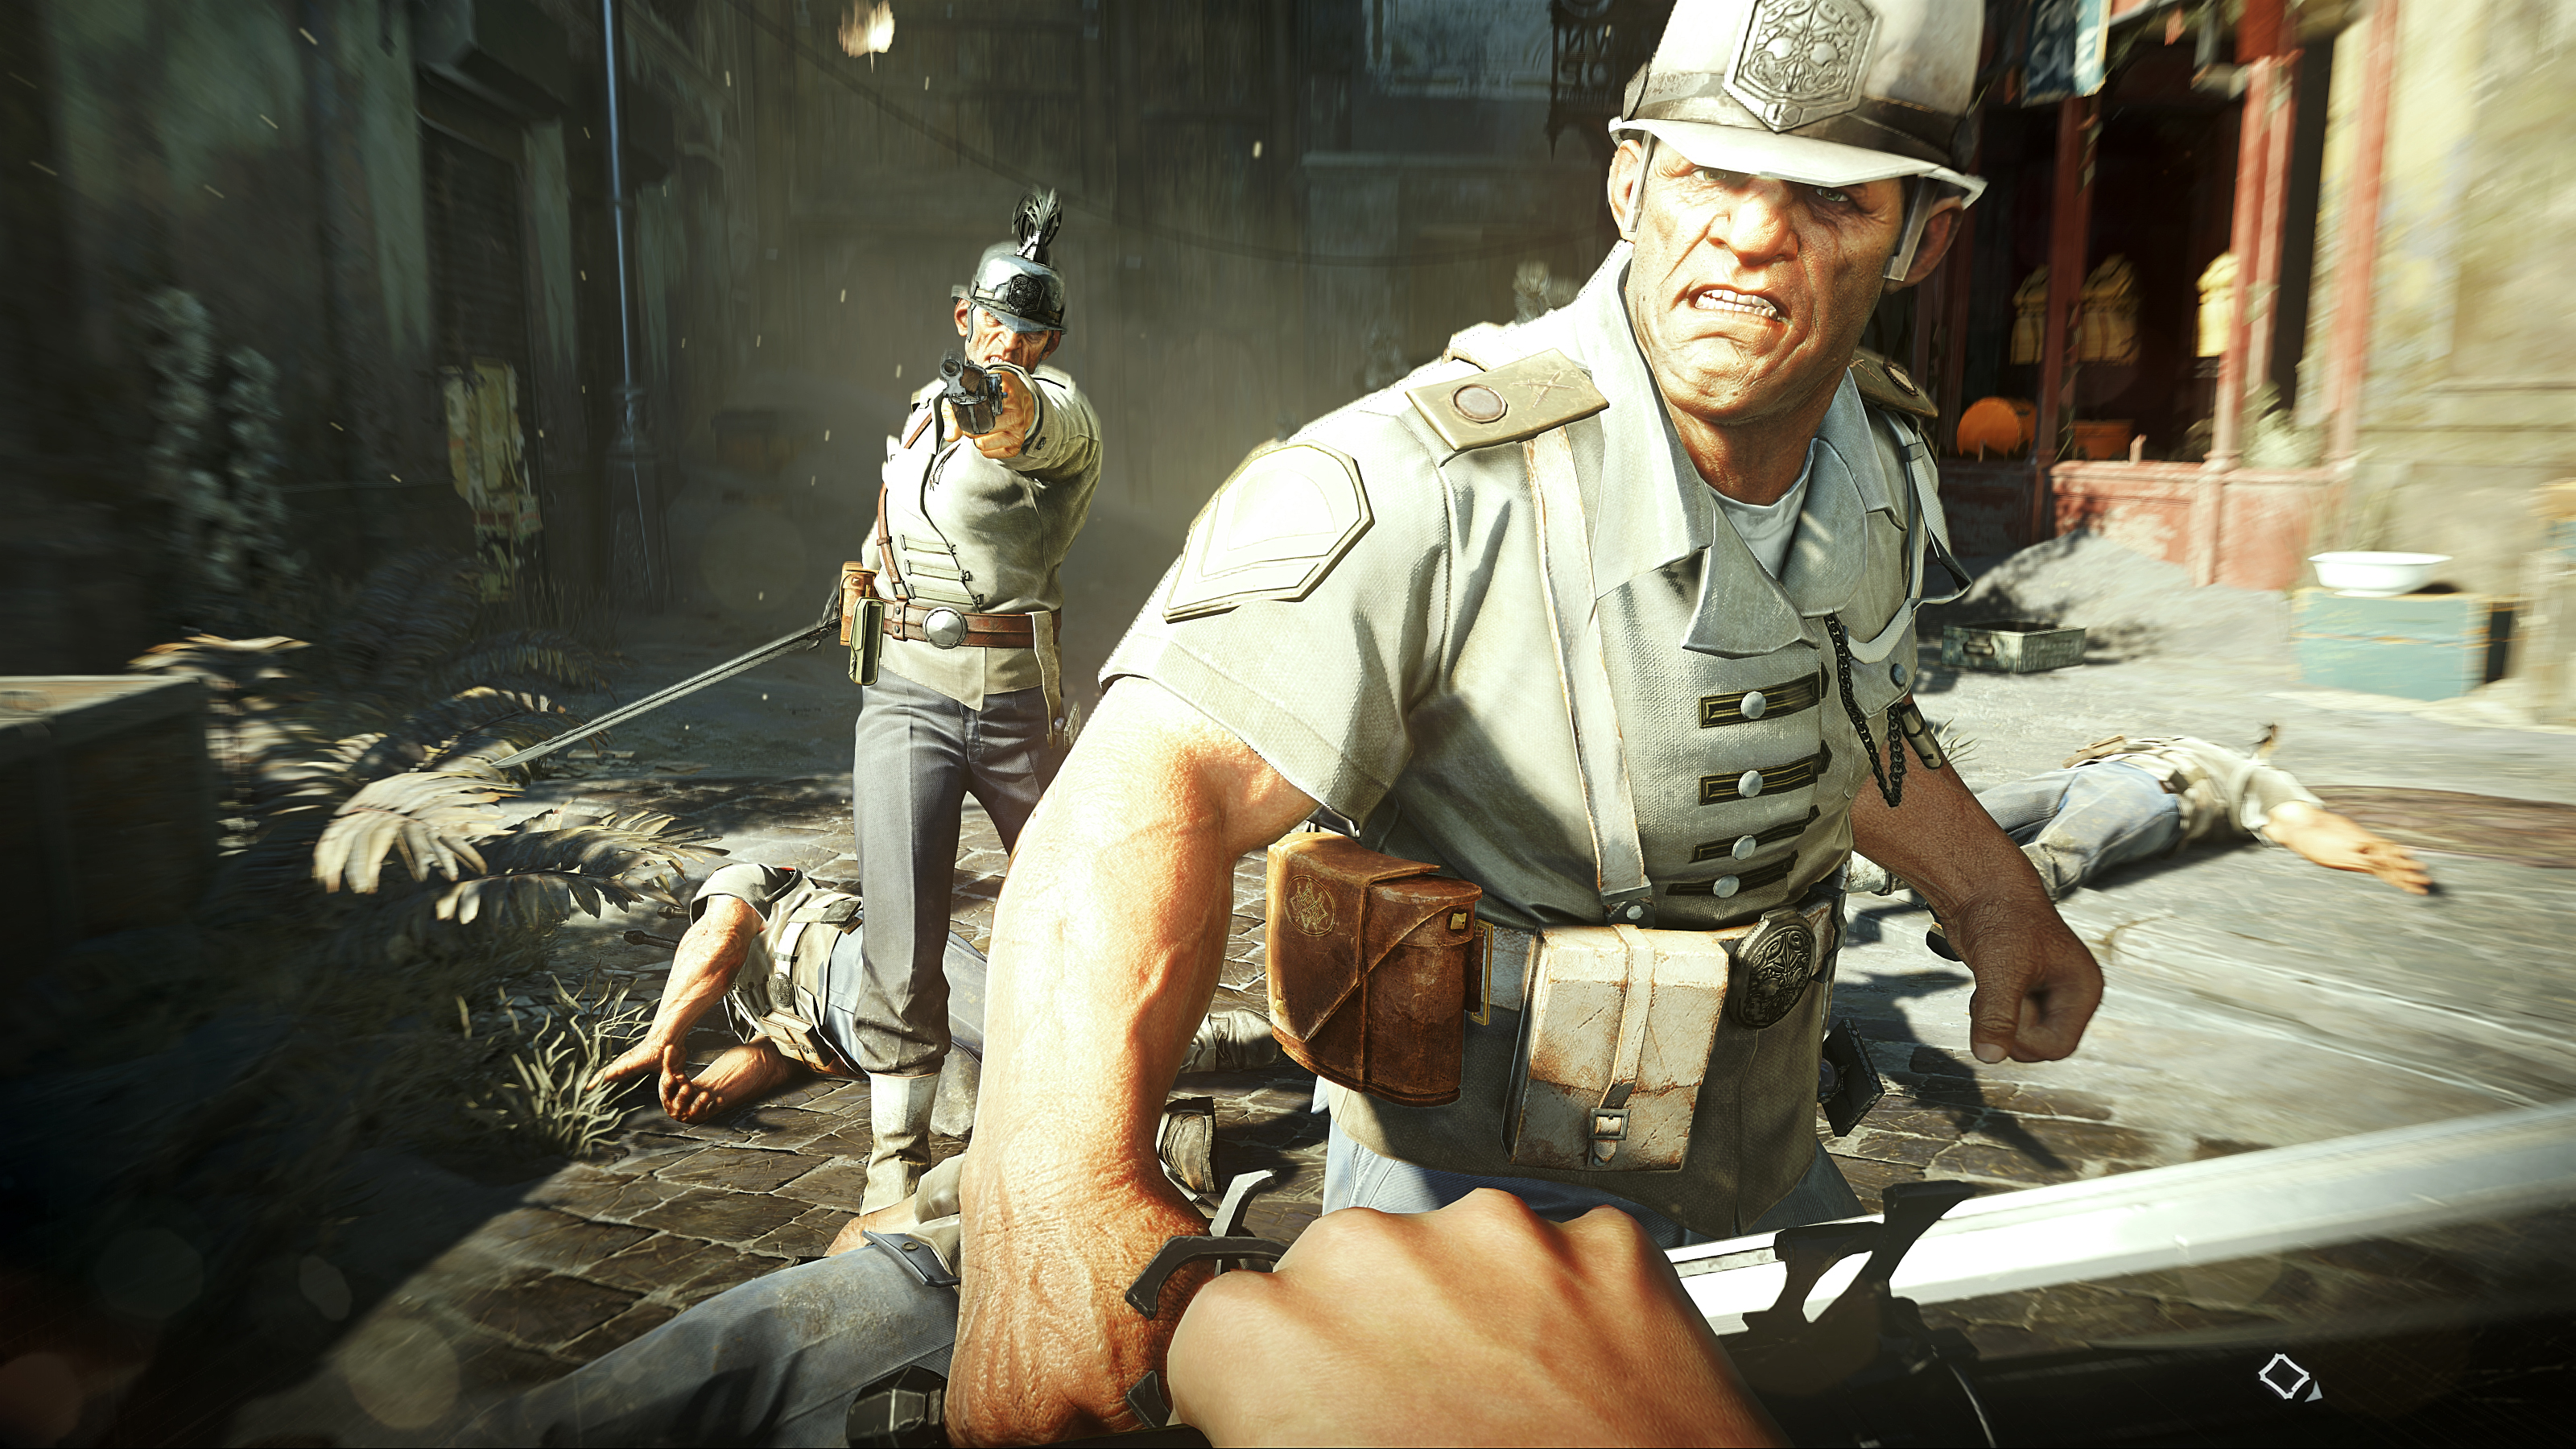 Photo of Freestyle Assassin: The Dishonored 2 Gaming game is unveiled for the first time